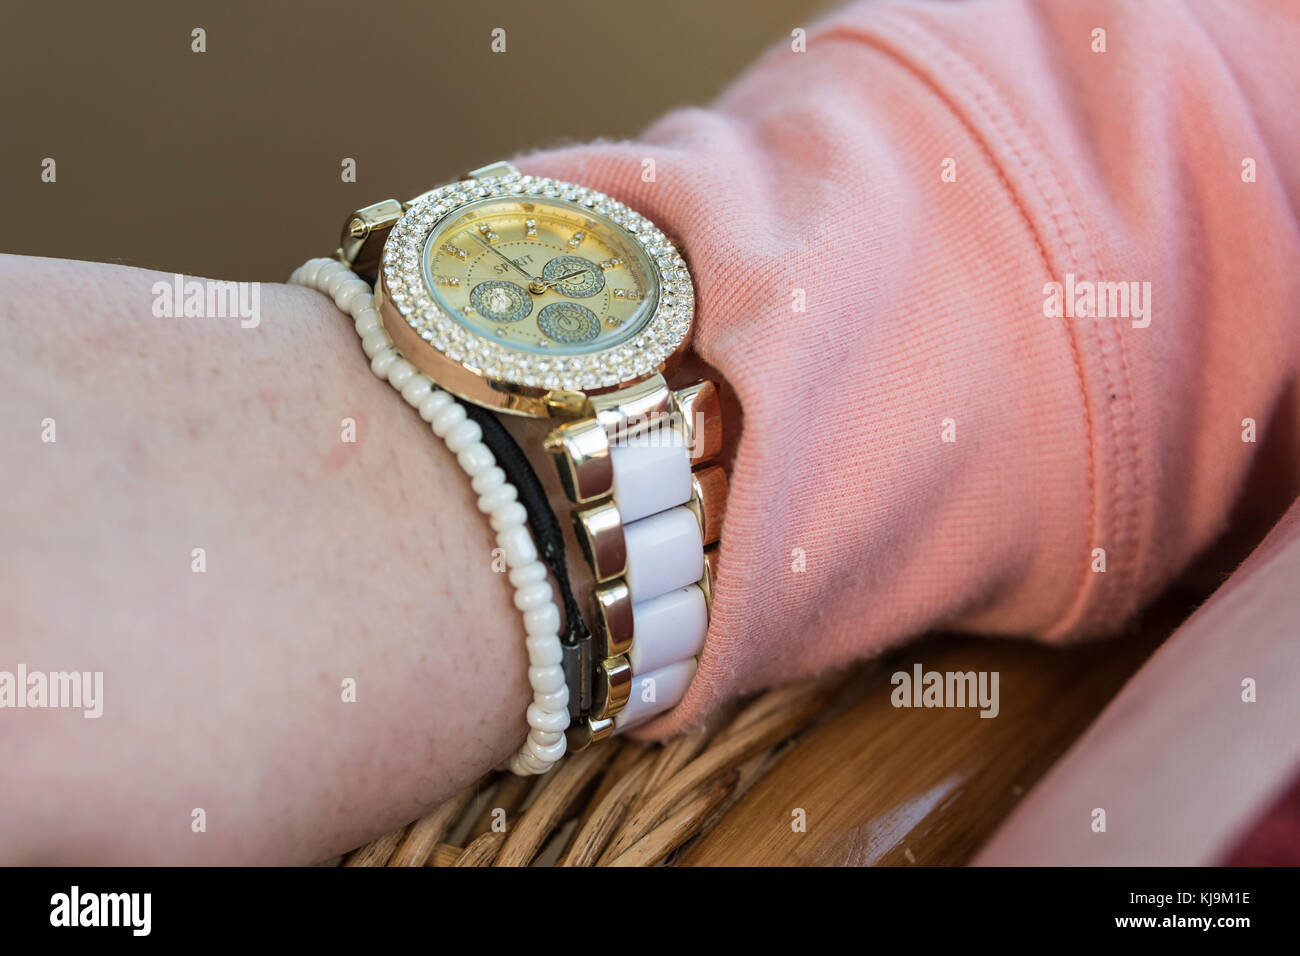 A woman's wrist wearing an expensive looking watch. - Stock Image